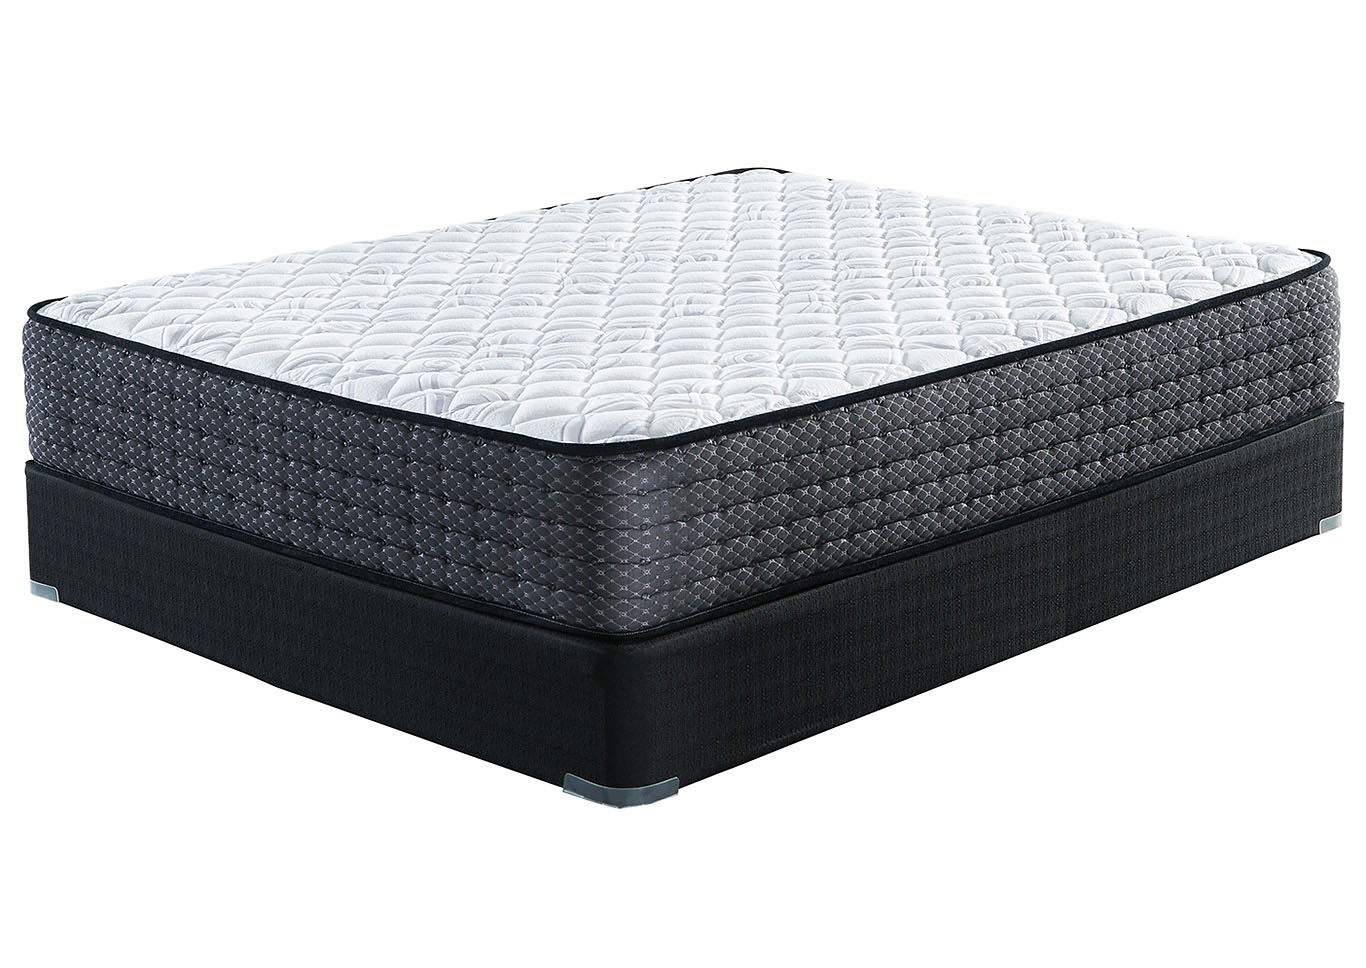 Limited Edition White Firm Twin Mattress w/Foundation,Sierra Sleep by Ashley